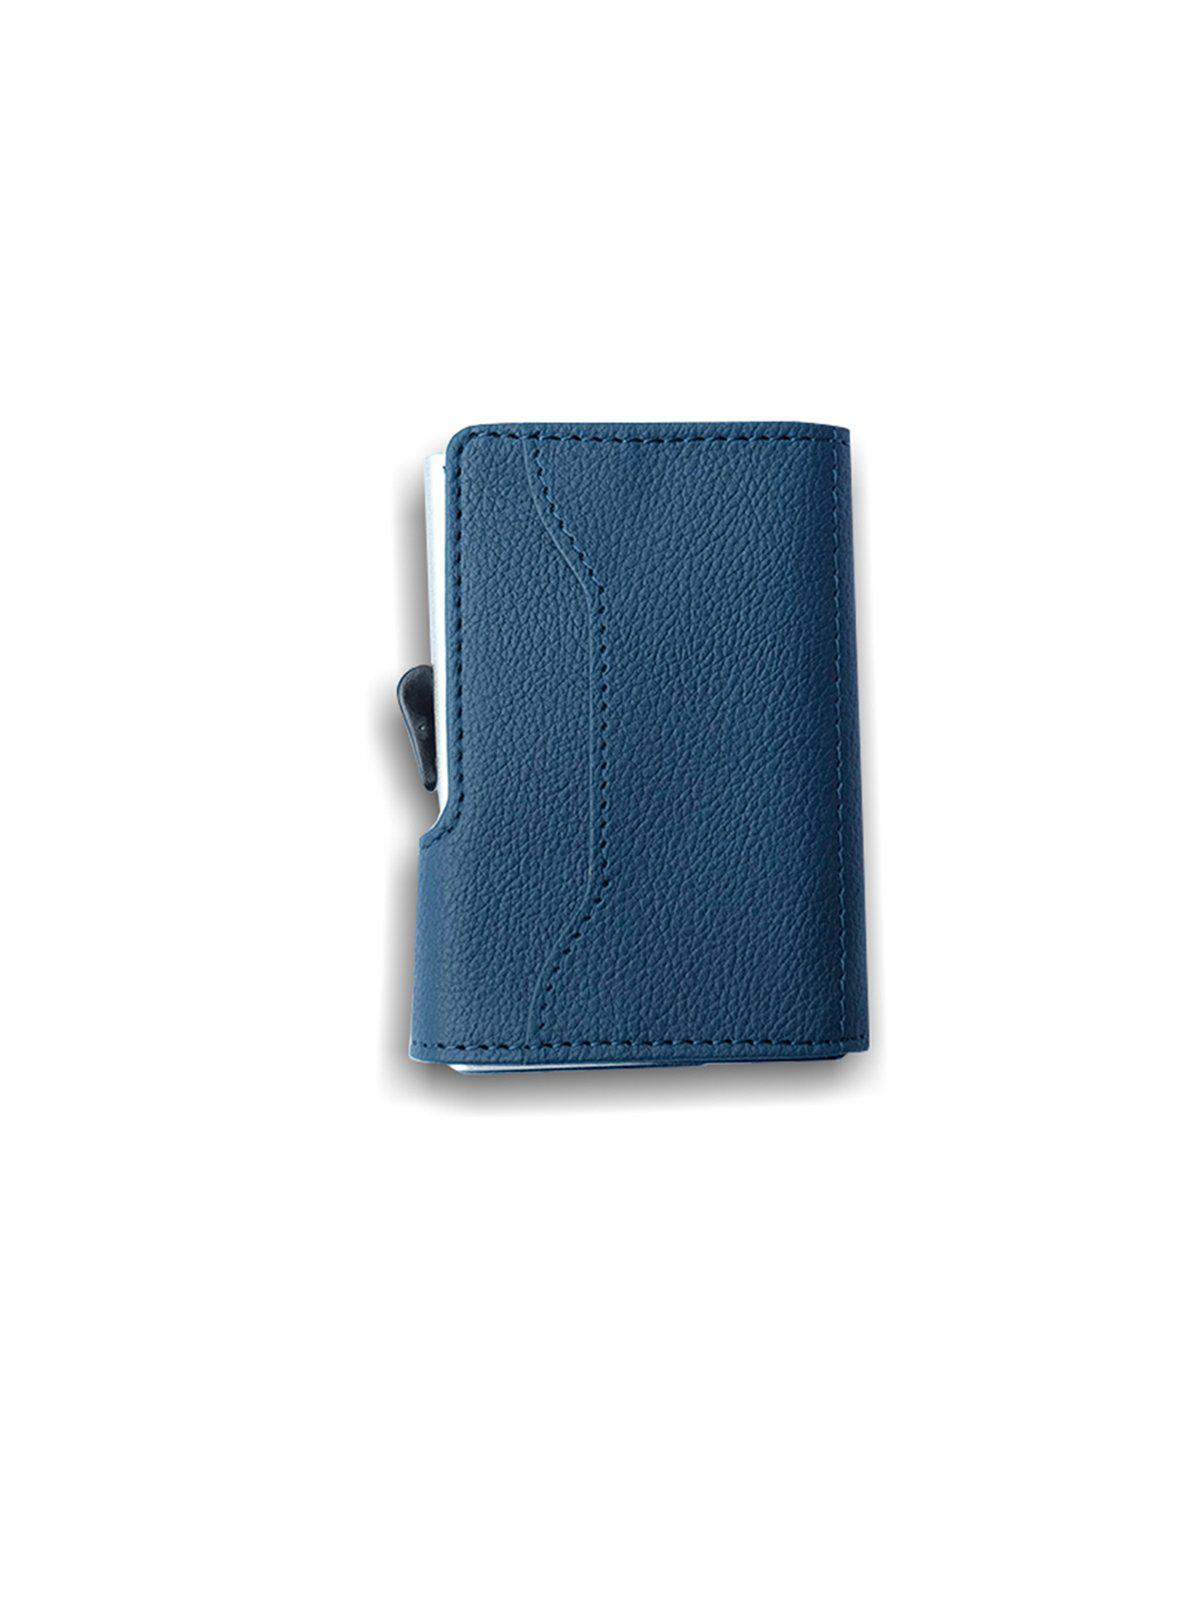 8ea10cca159 C-Secure PU Leather RFID Wallet Navy - MORE by Morello Indonesia